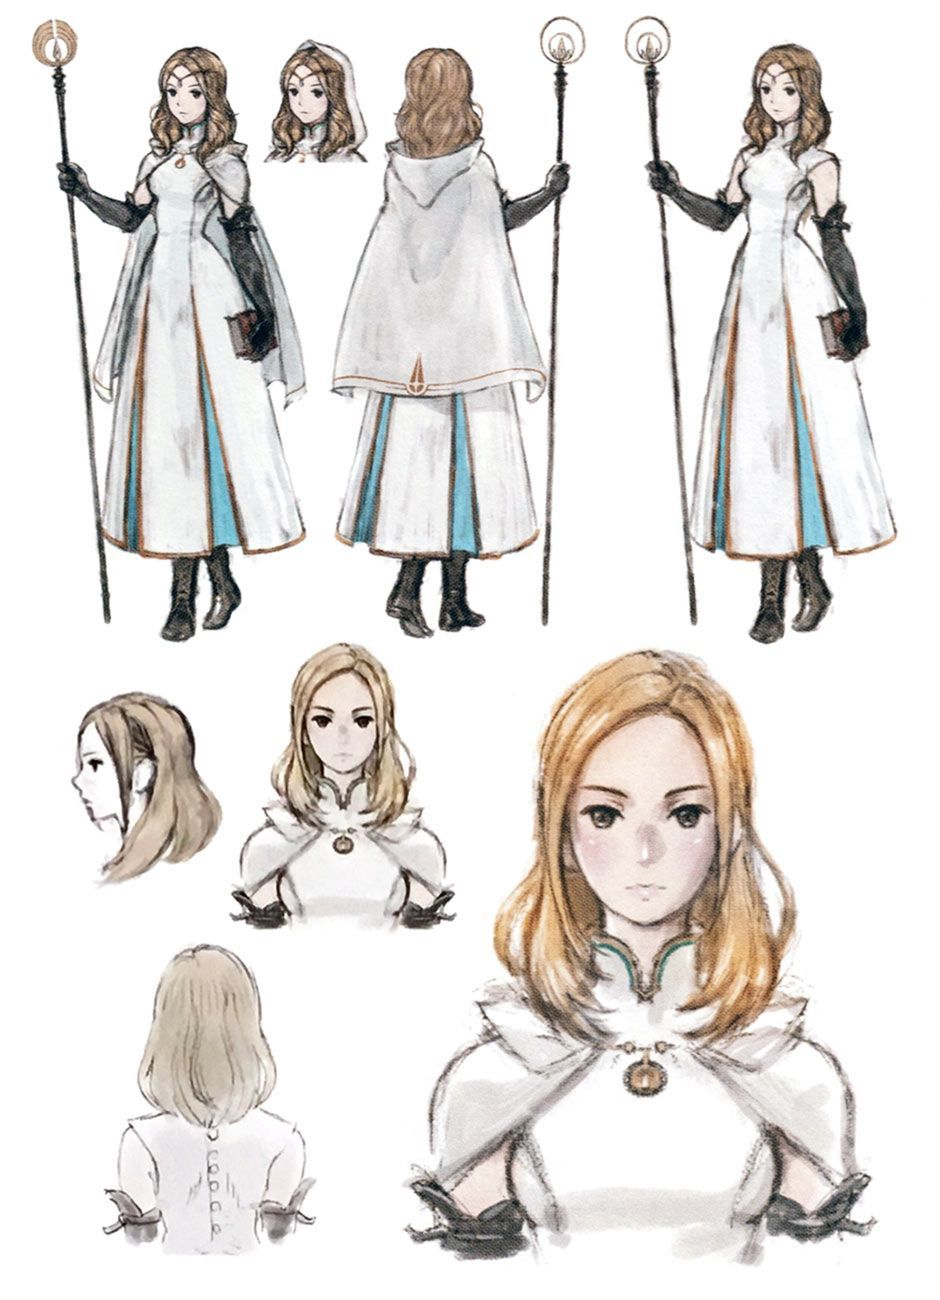 Ophilia Clement Concept Art - Octopath Traveler Art Gallery  The Effective Pictures We Offer You About Character Design writing   A quality picture can tell you many things. You can find the most beautiful pictures that can be presented to you about  Character Design princess  in this account. When you look a... #3d character #Anatomy Rpg #Animation #Art #Character art #Character concept #clement #Concept #Concept art #gallery #Glen keane #Line art #octopath #ophilia #Otto schmidt #traveler